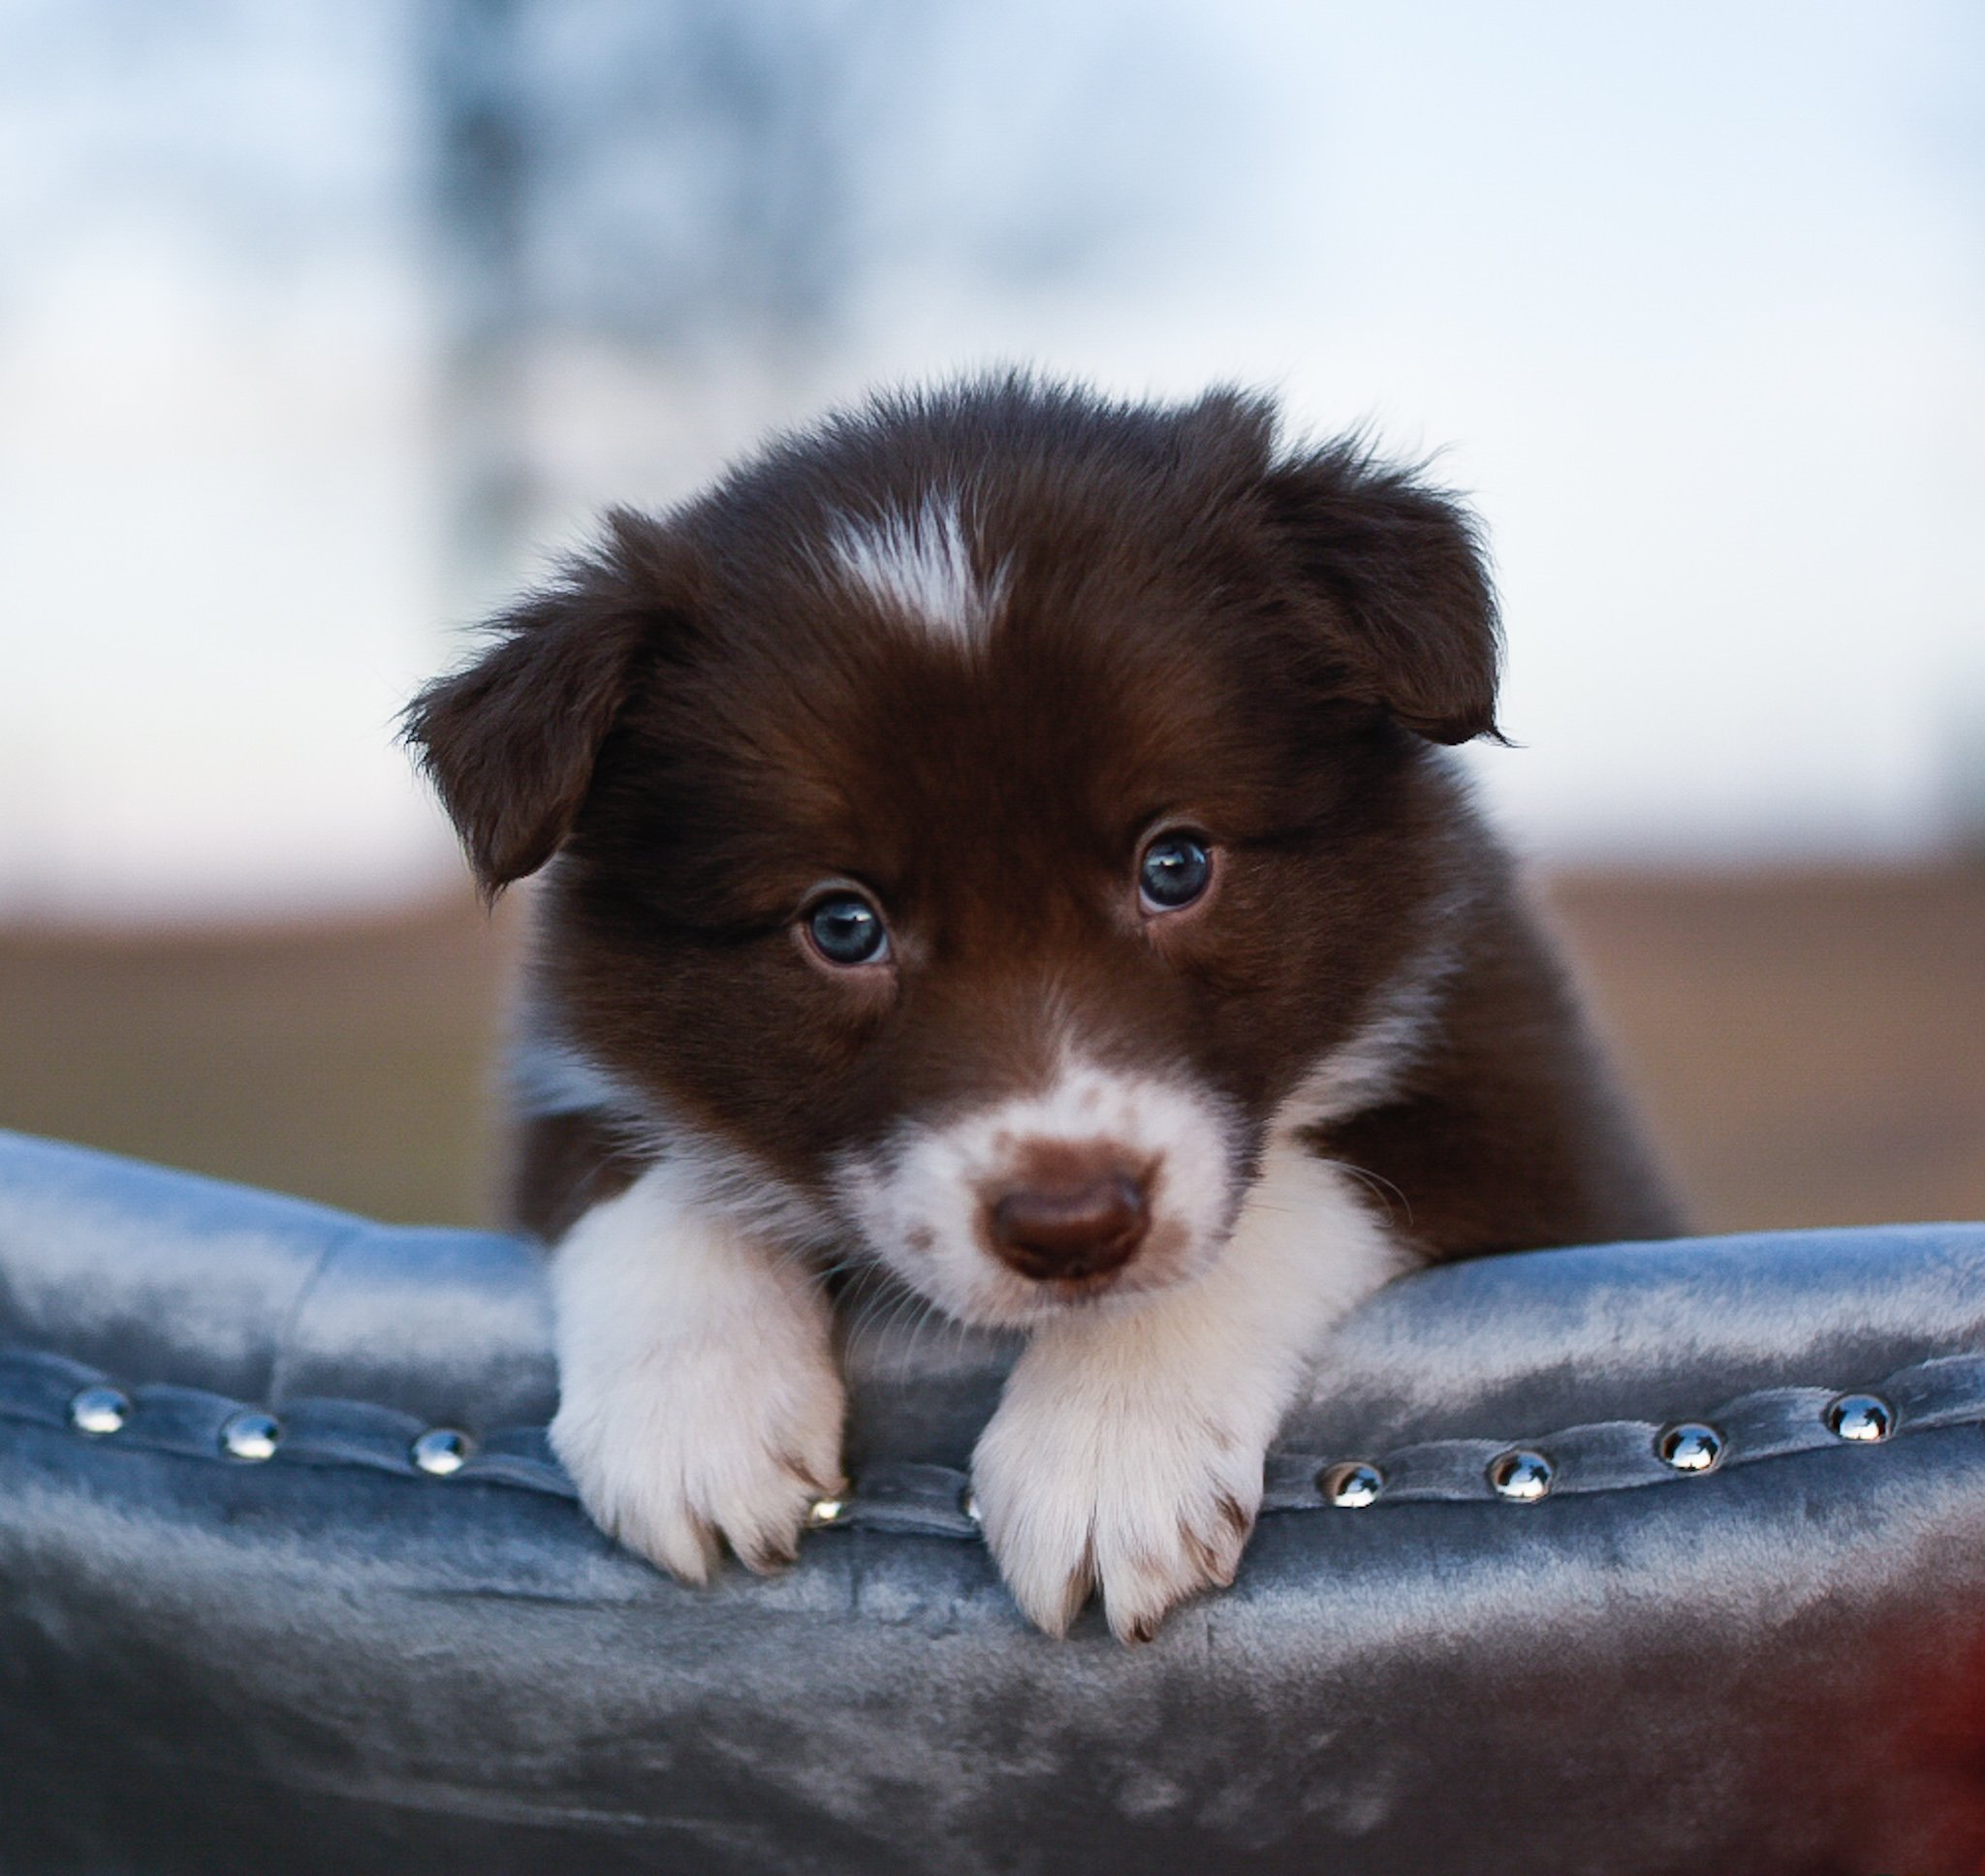 Red Border Collie Maremma Sheepdog Puppies For Sale Code Of Ethics Breeder